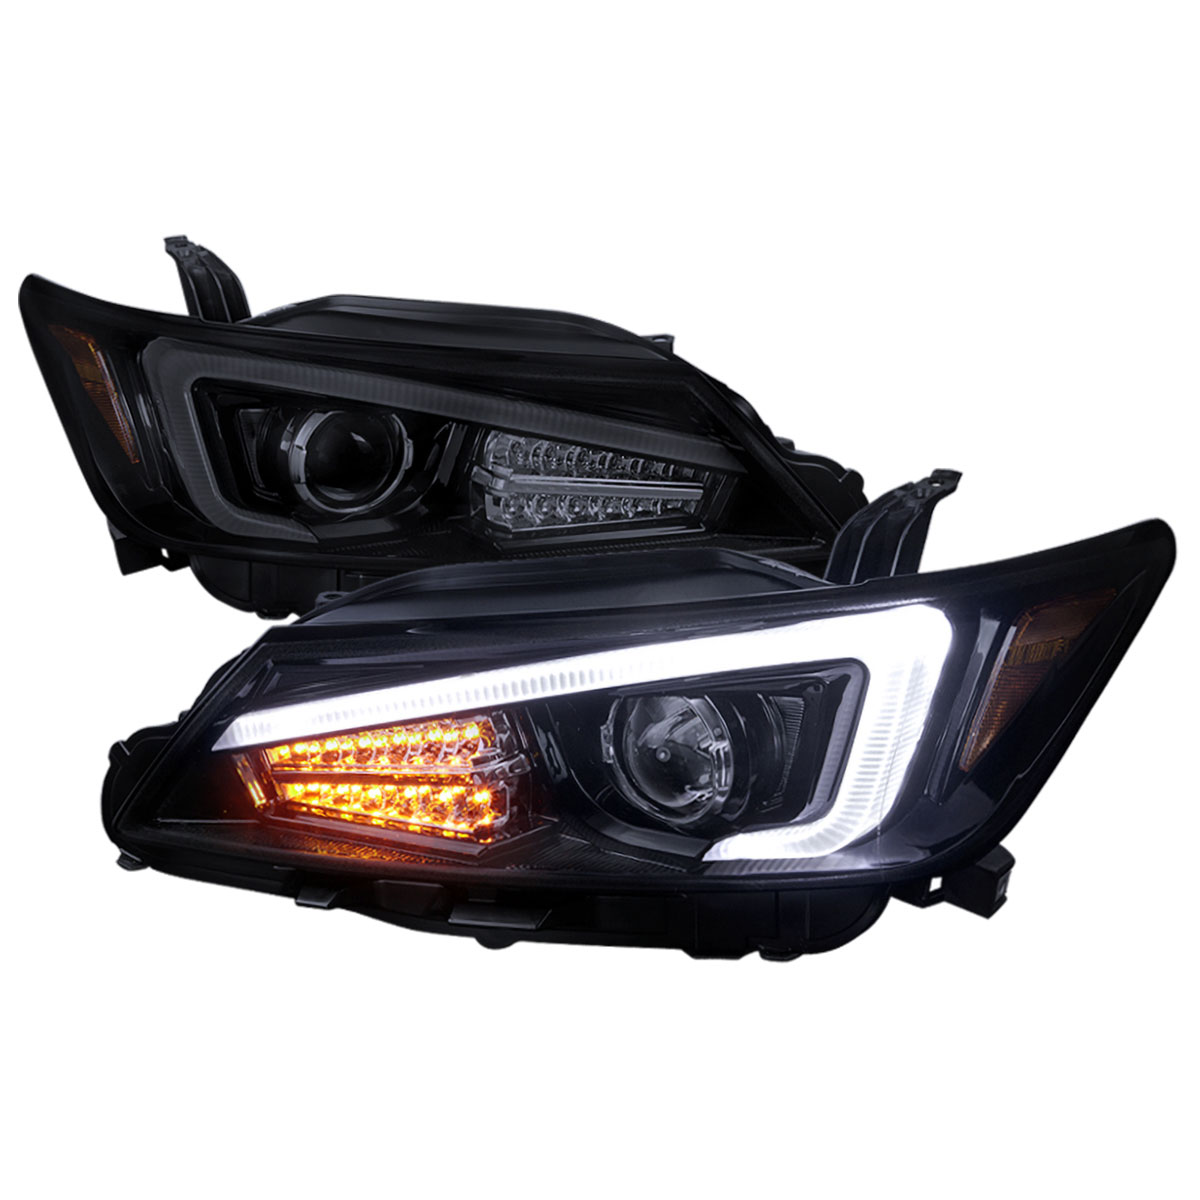 Led lights for projector headlights